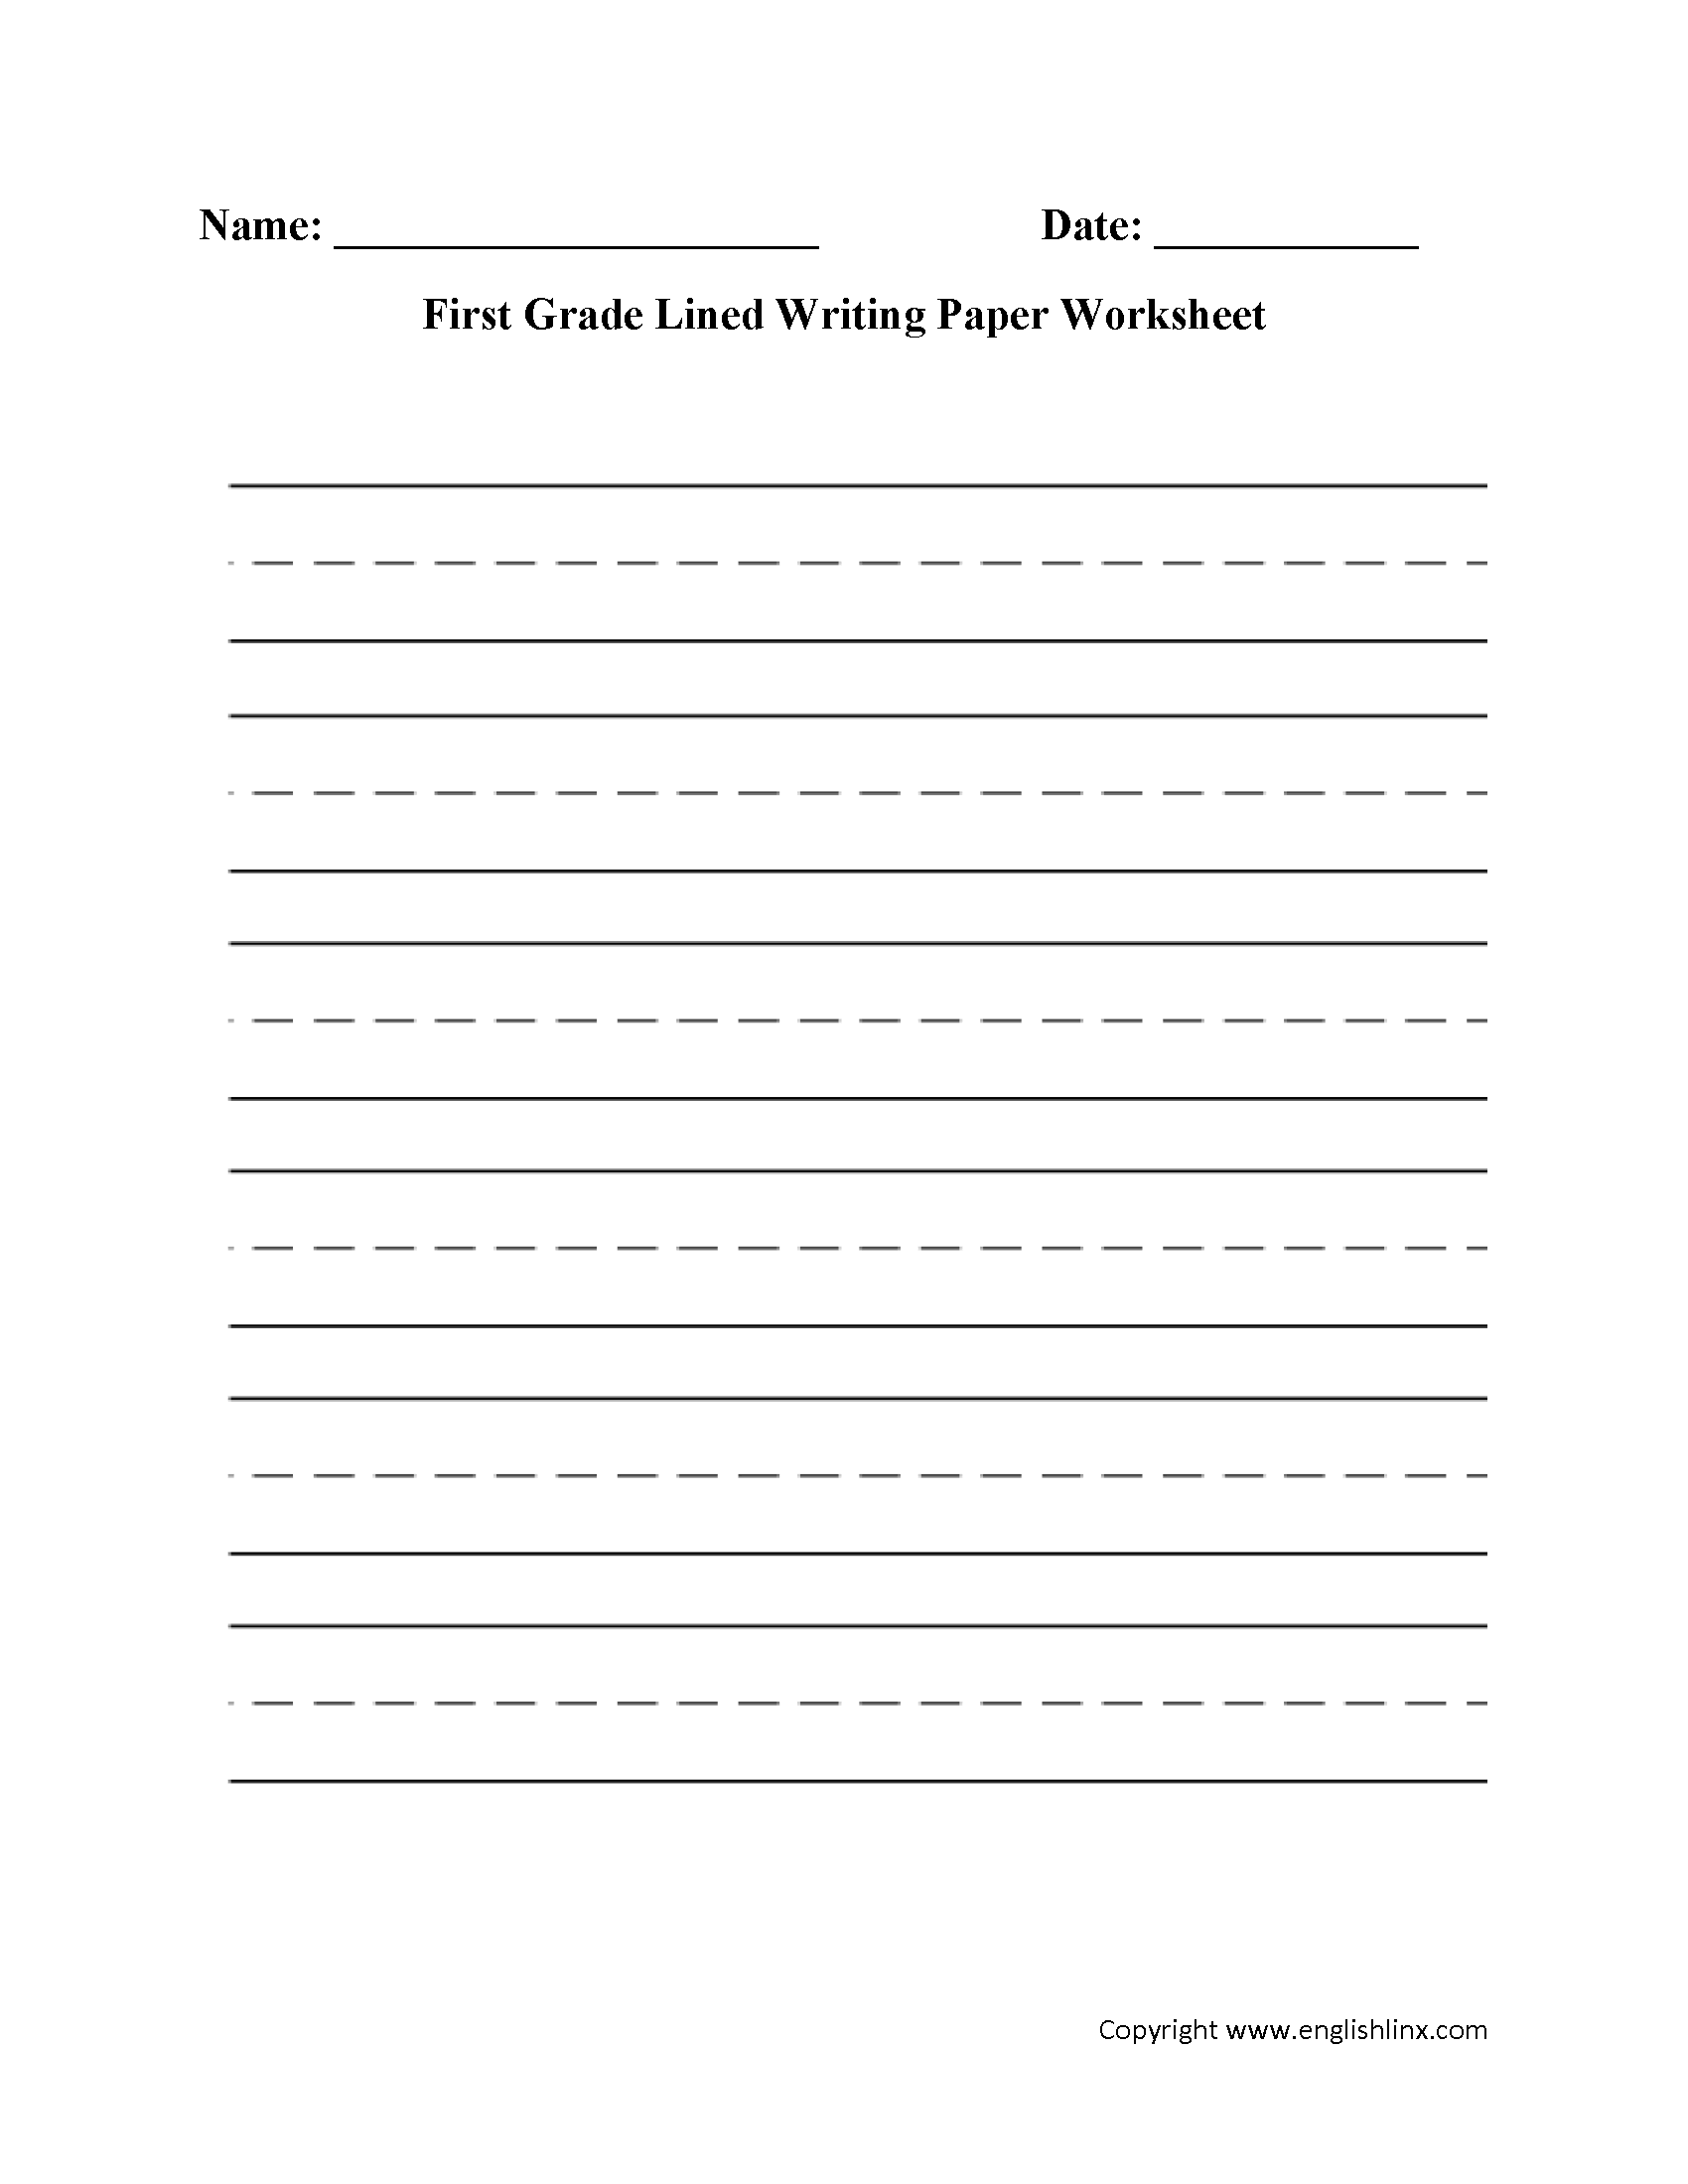 small resolution of Writing Worksheets Lined Writing Paper Worksheets - Best Writing Worksheets  Lined Writing Pap…   Writing lines